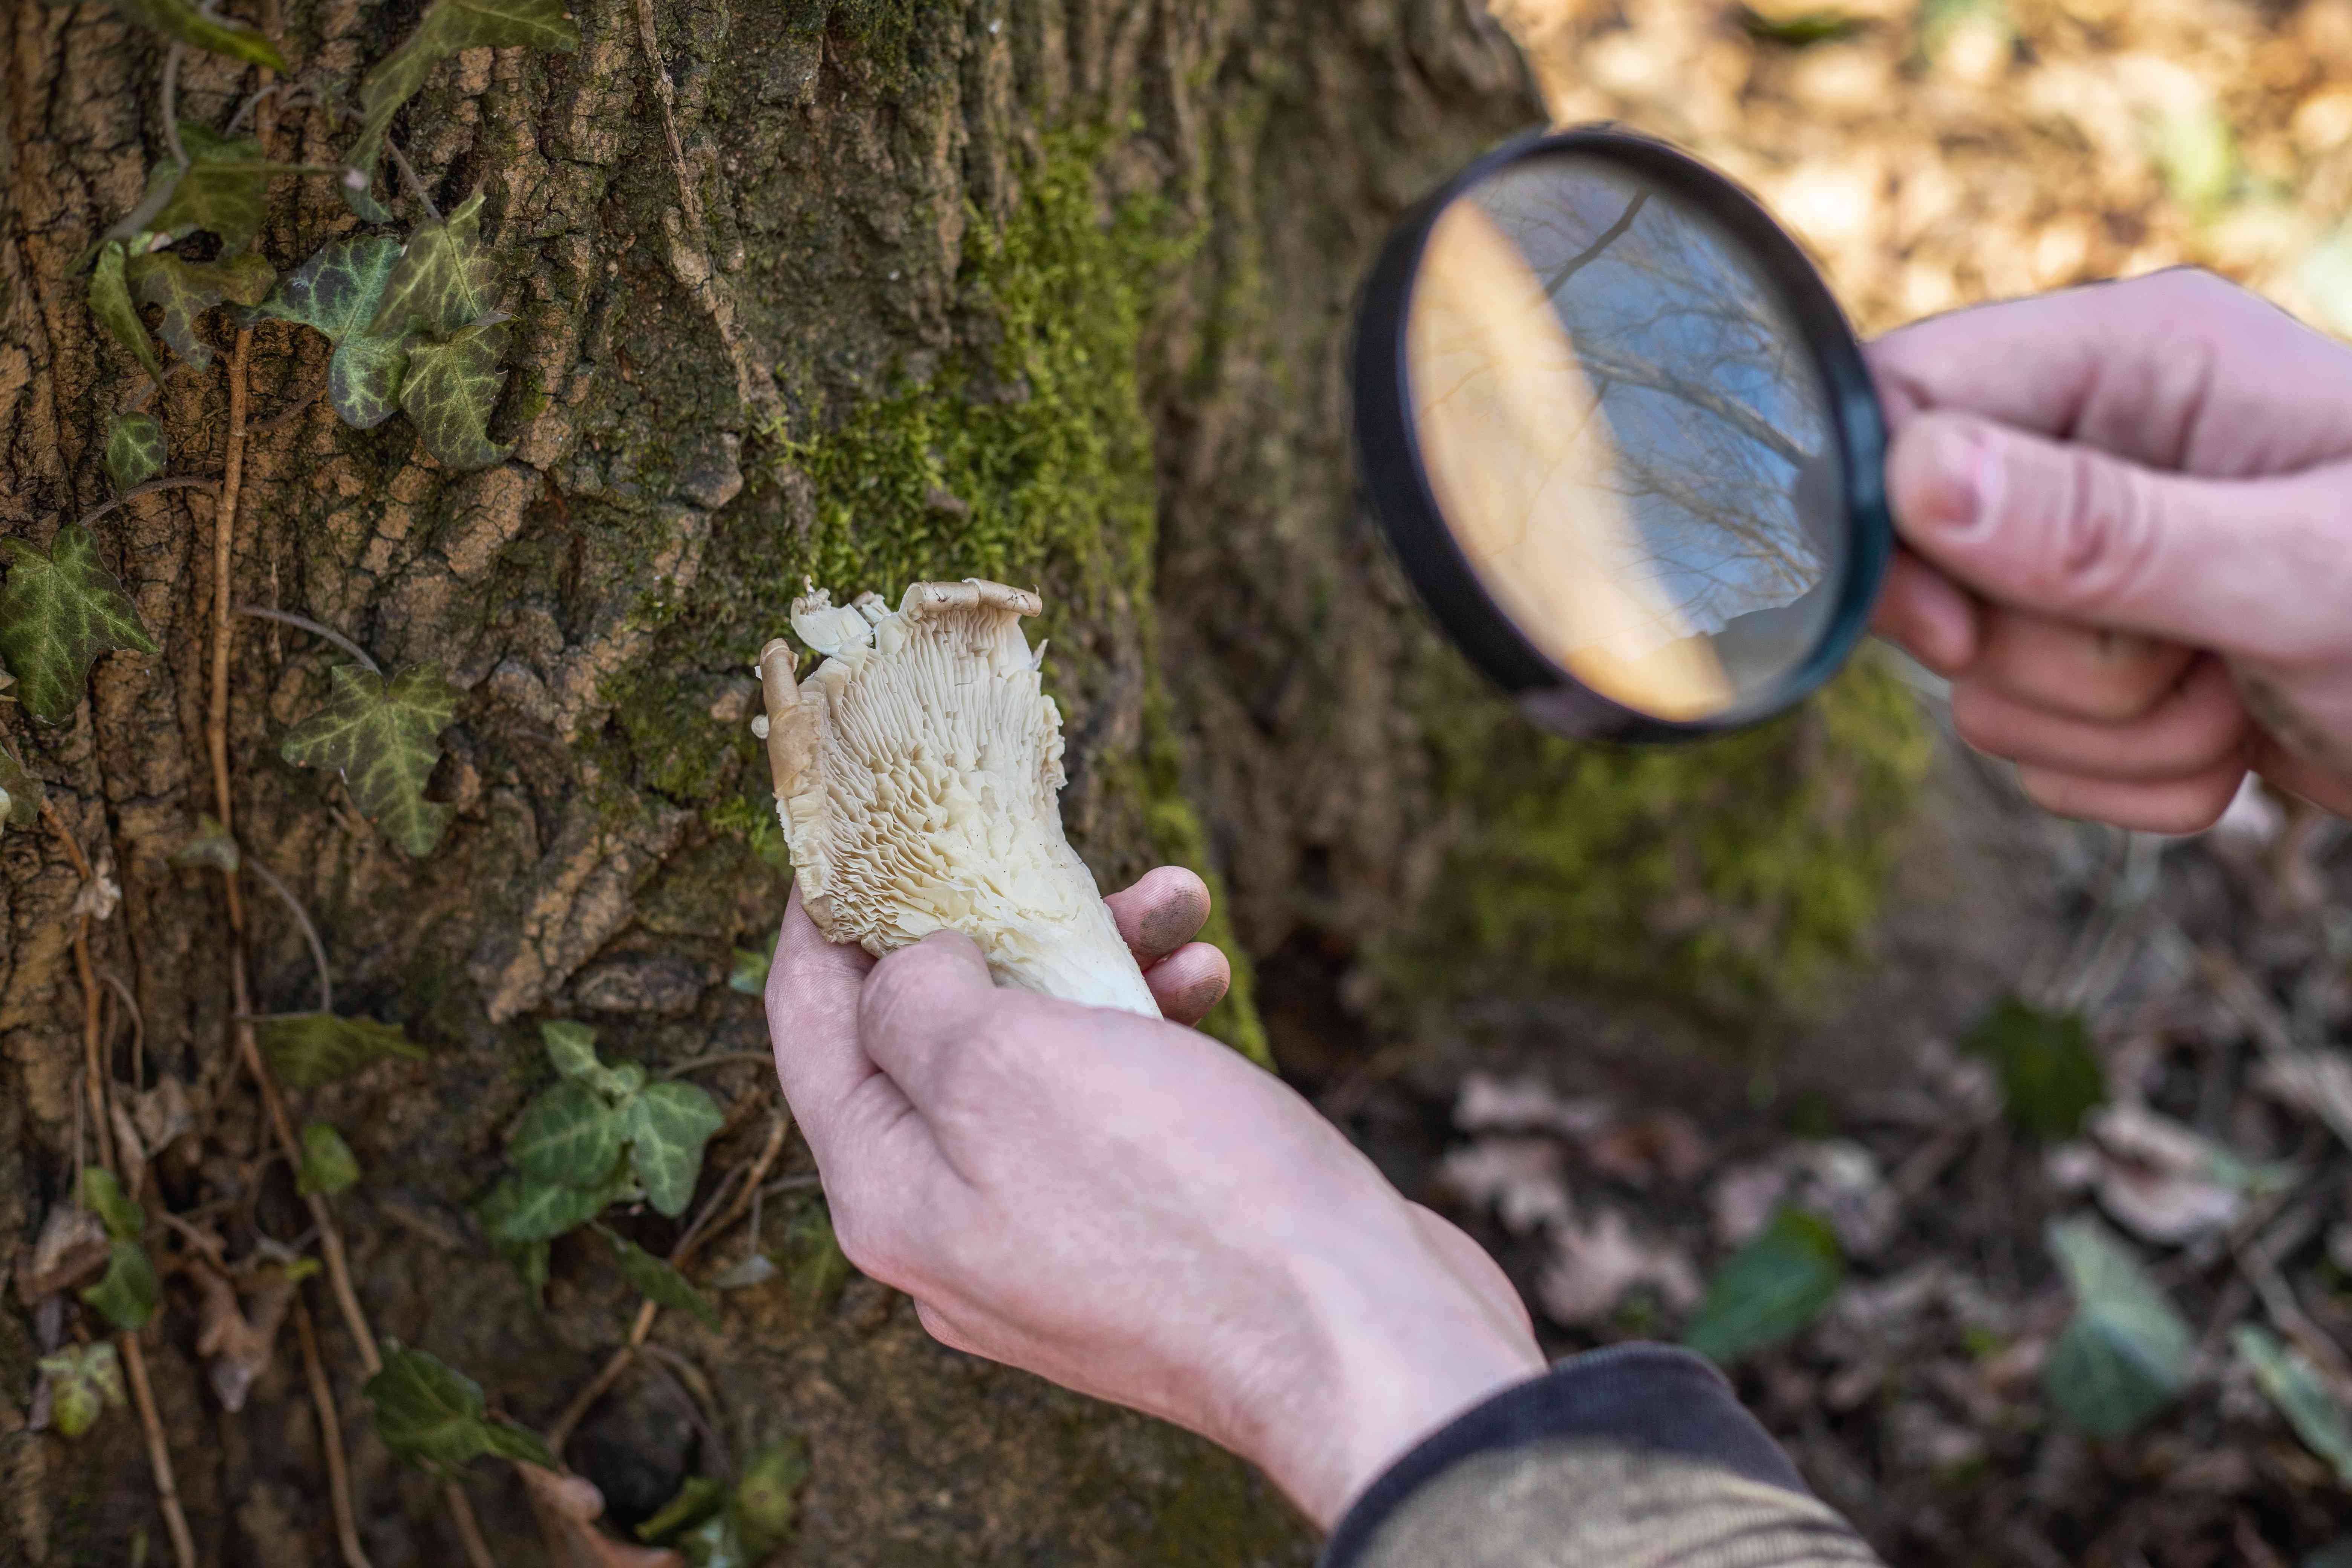 hands hold a magnifying glass up to mushroom found in woods